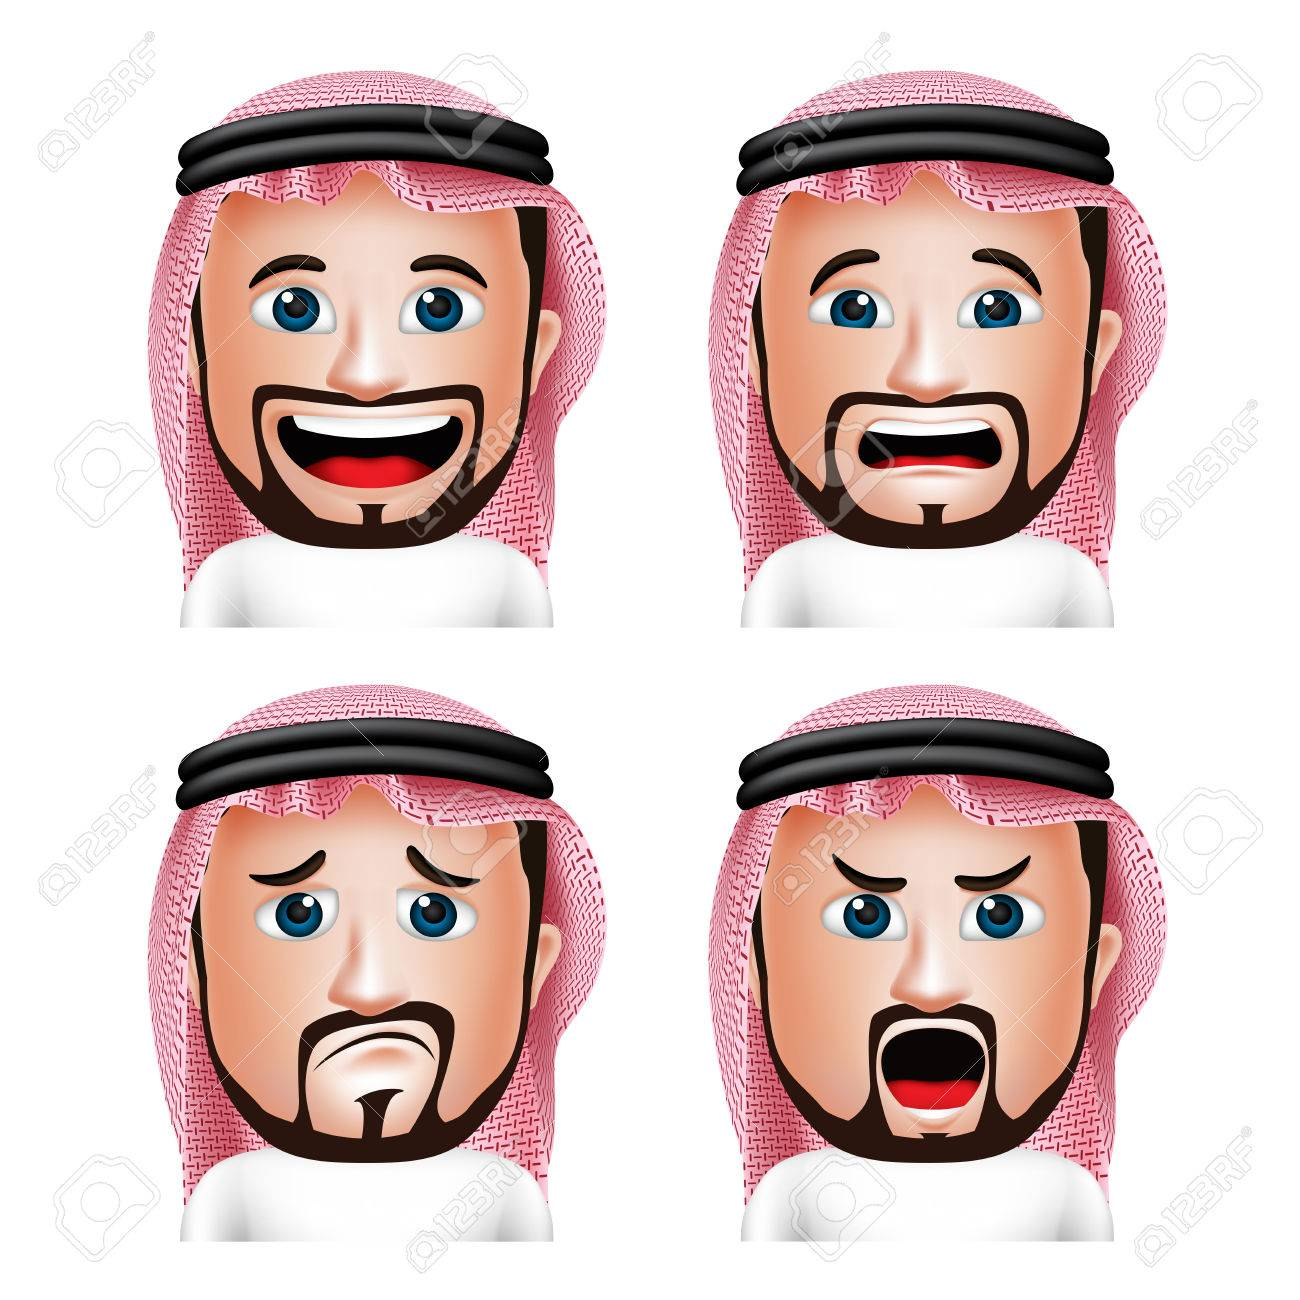 Set of 3D Realistic Saudi Arab Man Head with Different Facial Expressions Wearing Thobe Avatar Isolated in White Background. Editable Vector Illustration - 43875140